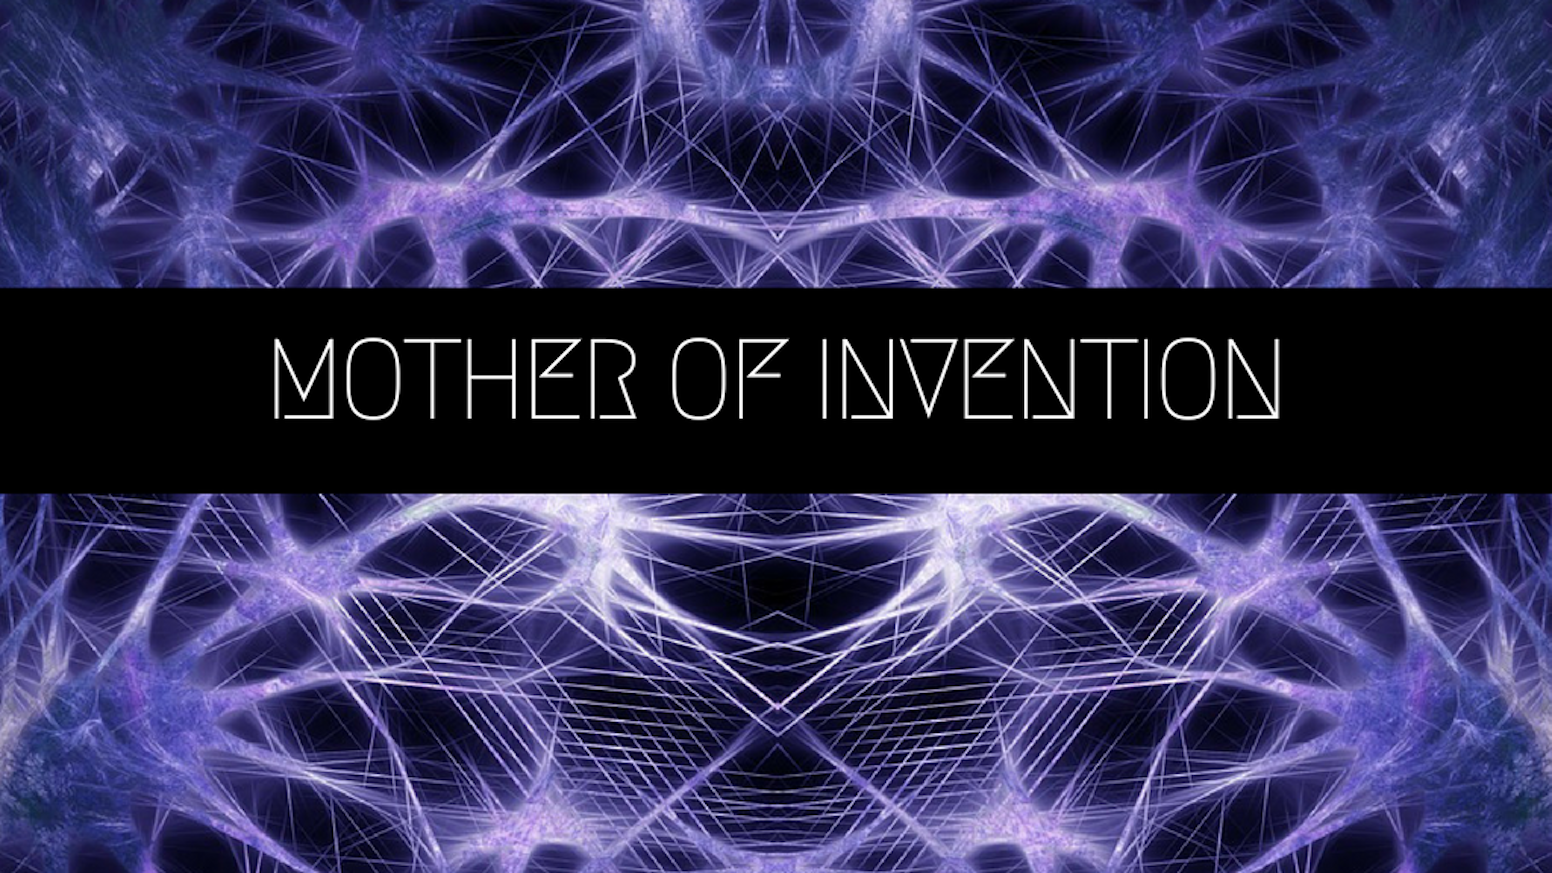 Essay Paper Generator Mother Of Invention A Speculative Fiction Anthology Of Diverse  Challenging Stories About Gender And Artificial Intelligence Coming English Essays Book also First Day Of High School Essay Mother Of Invention By Twelfth Planet Press  Kickstarter Argumentative Essay Examples For High School